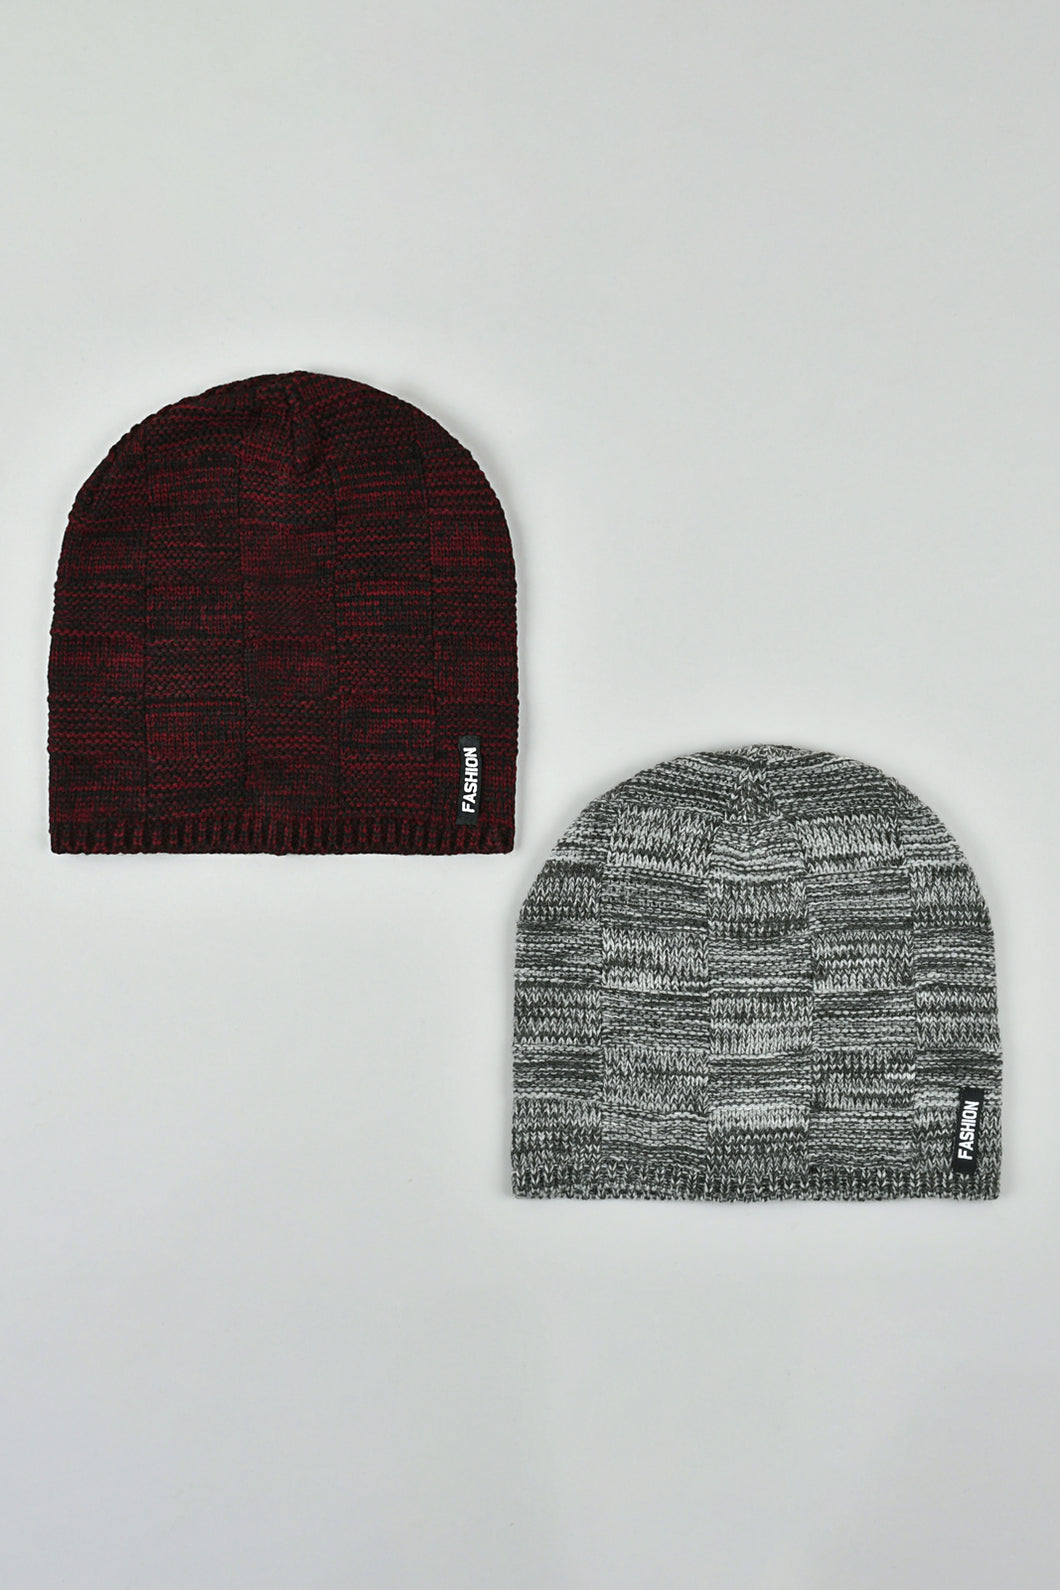 Maroon and Black Cable Knitted Beanies (Pack of 2)